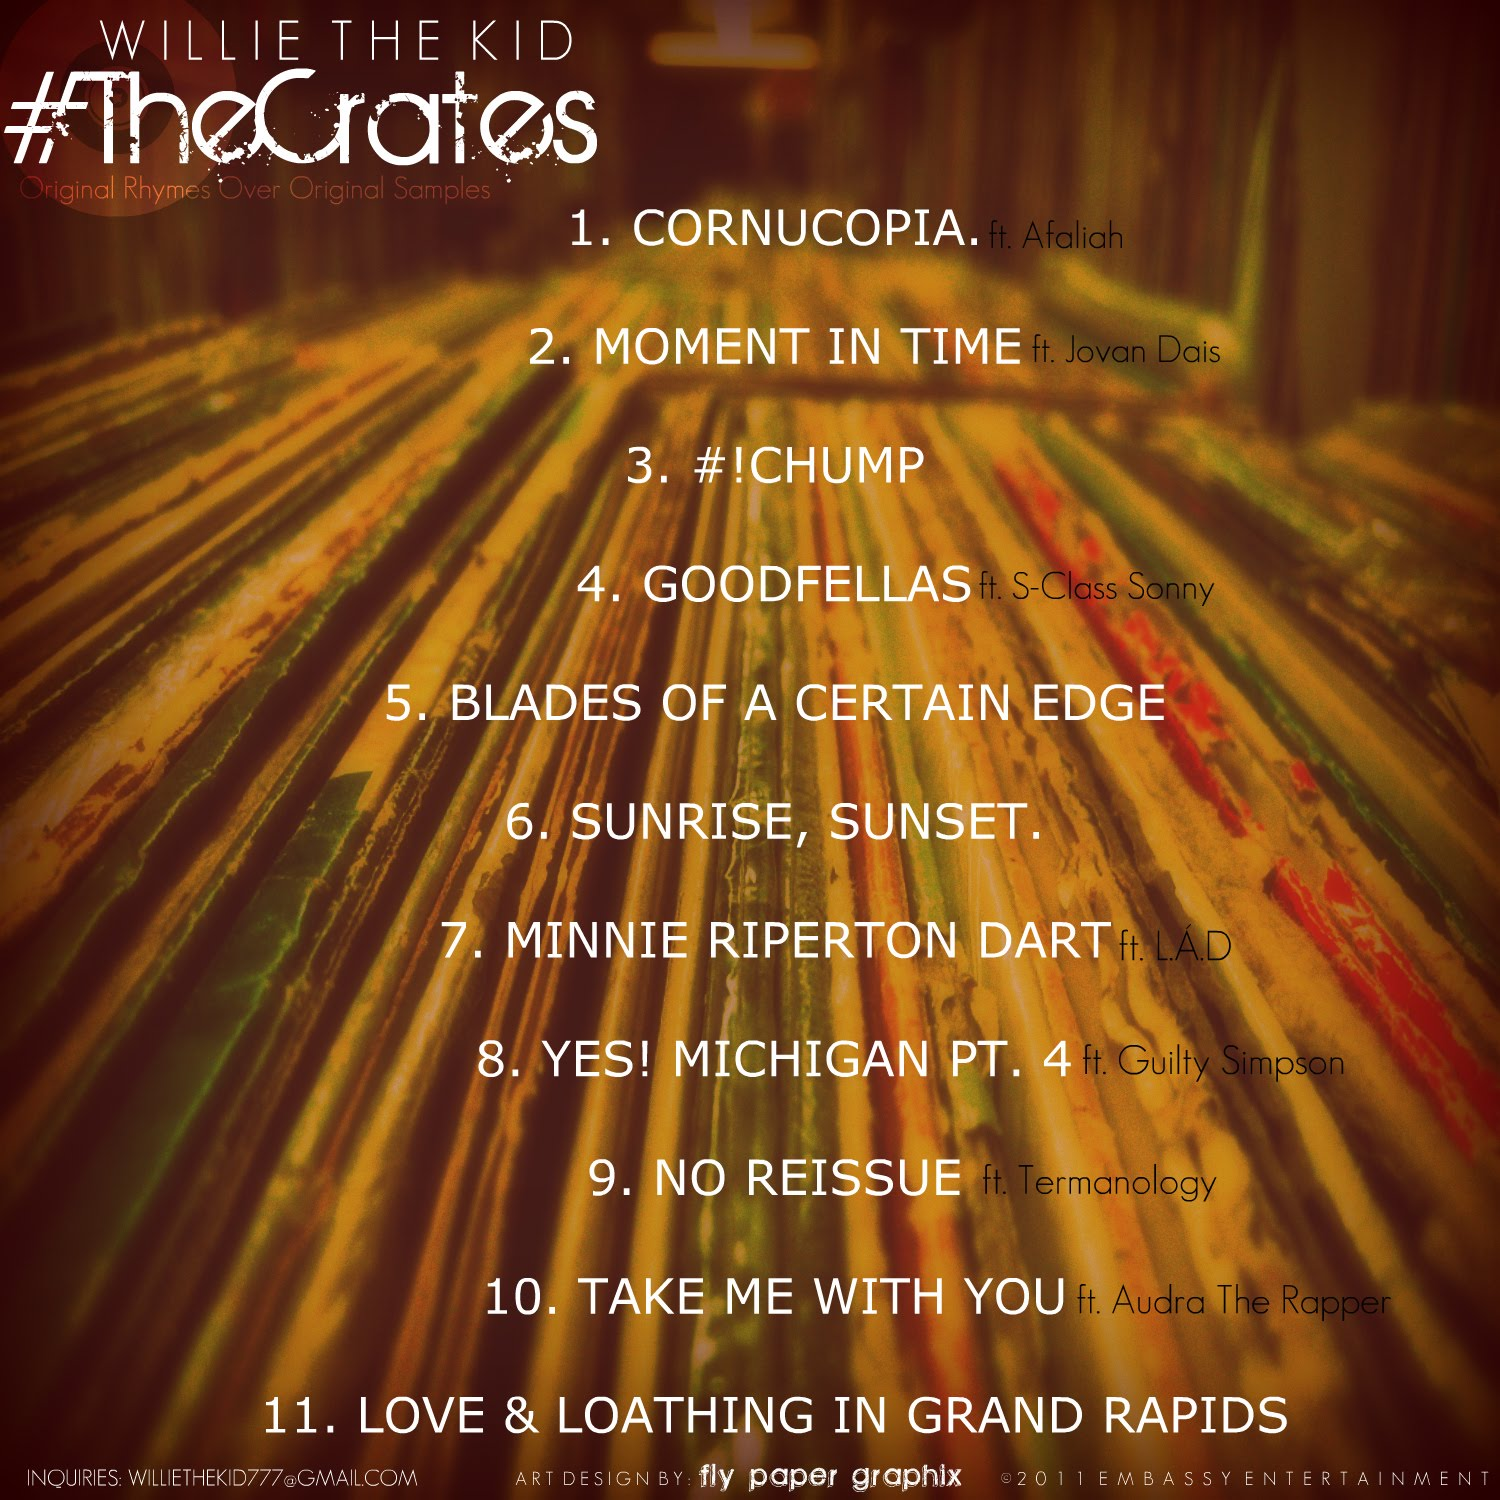 http://1.bp.blogspot.com/-c-aiUchQTYQ/TnIn8JLMvCI/AAAAAAAAGco/_chGX4izDzE/s1600/Willie-The-Kid-The-Crates-Mixtape-Back-Cover.jpg